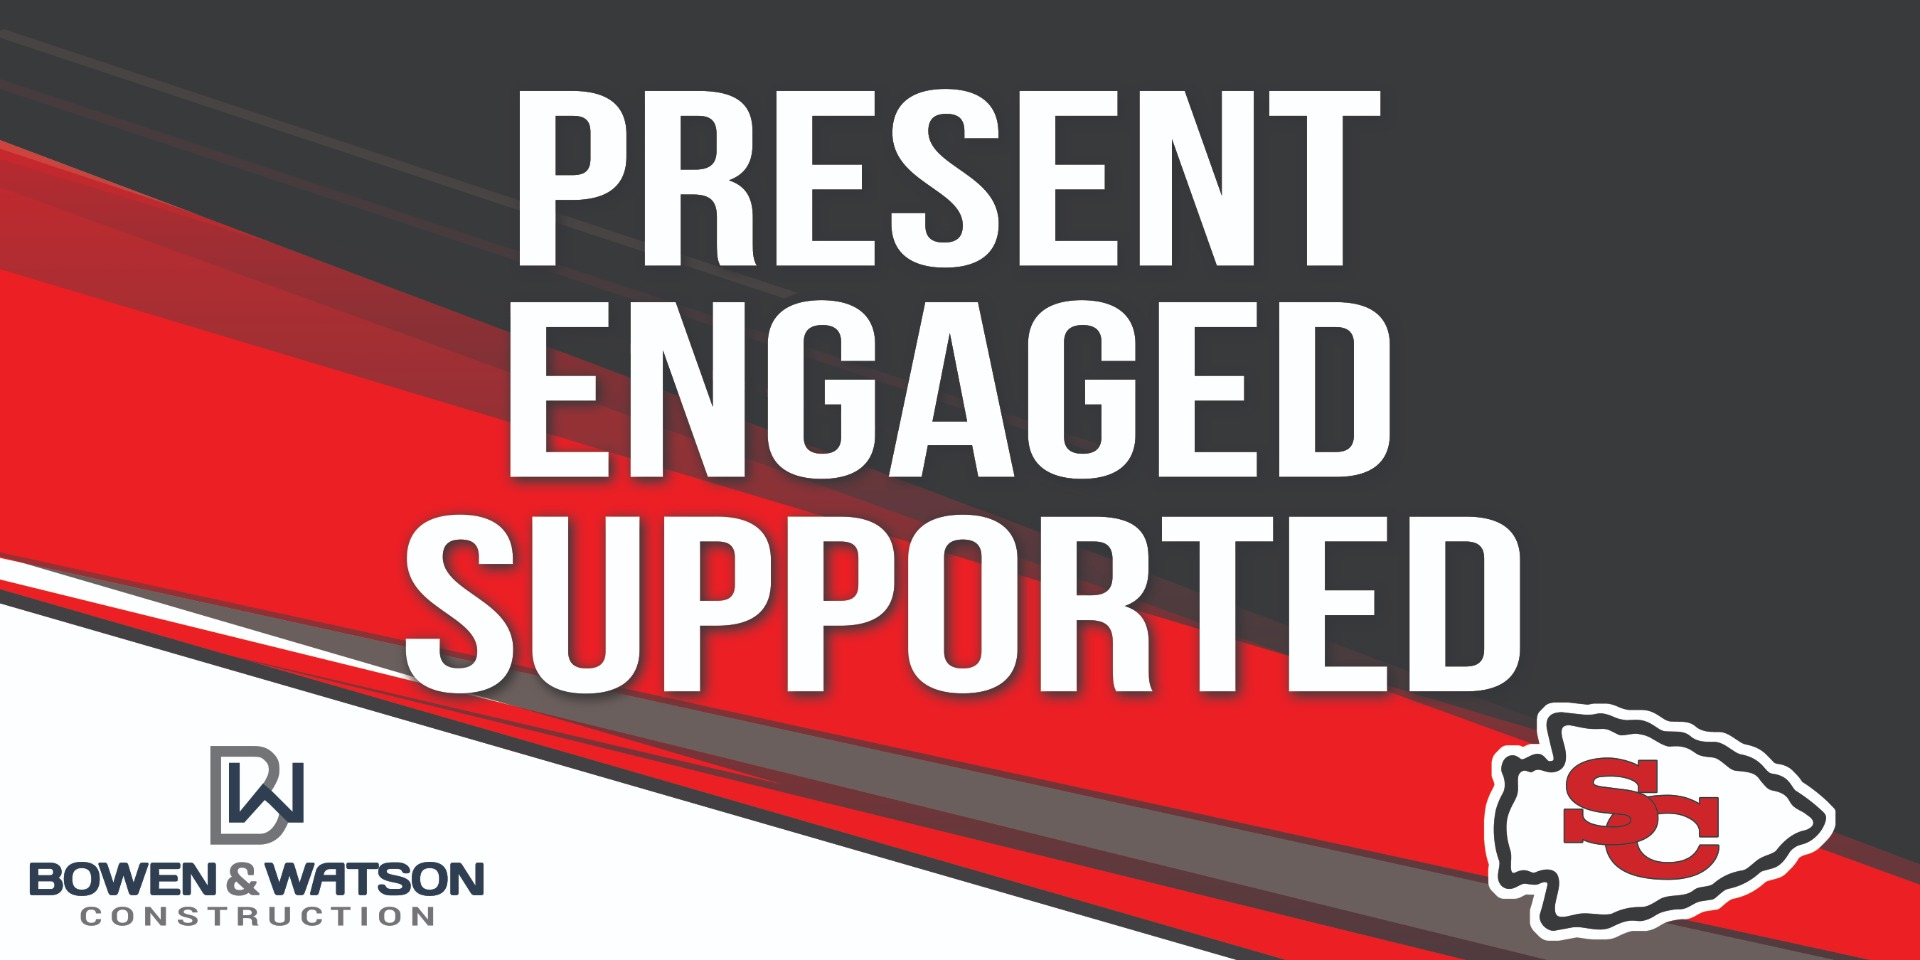 Present, Engaged, Supported Sign